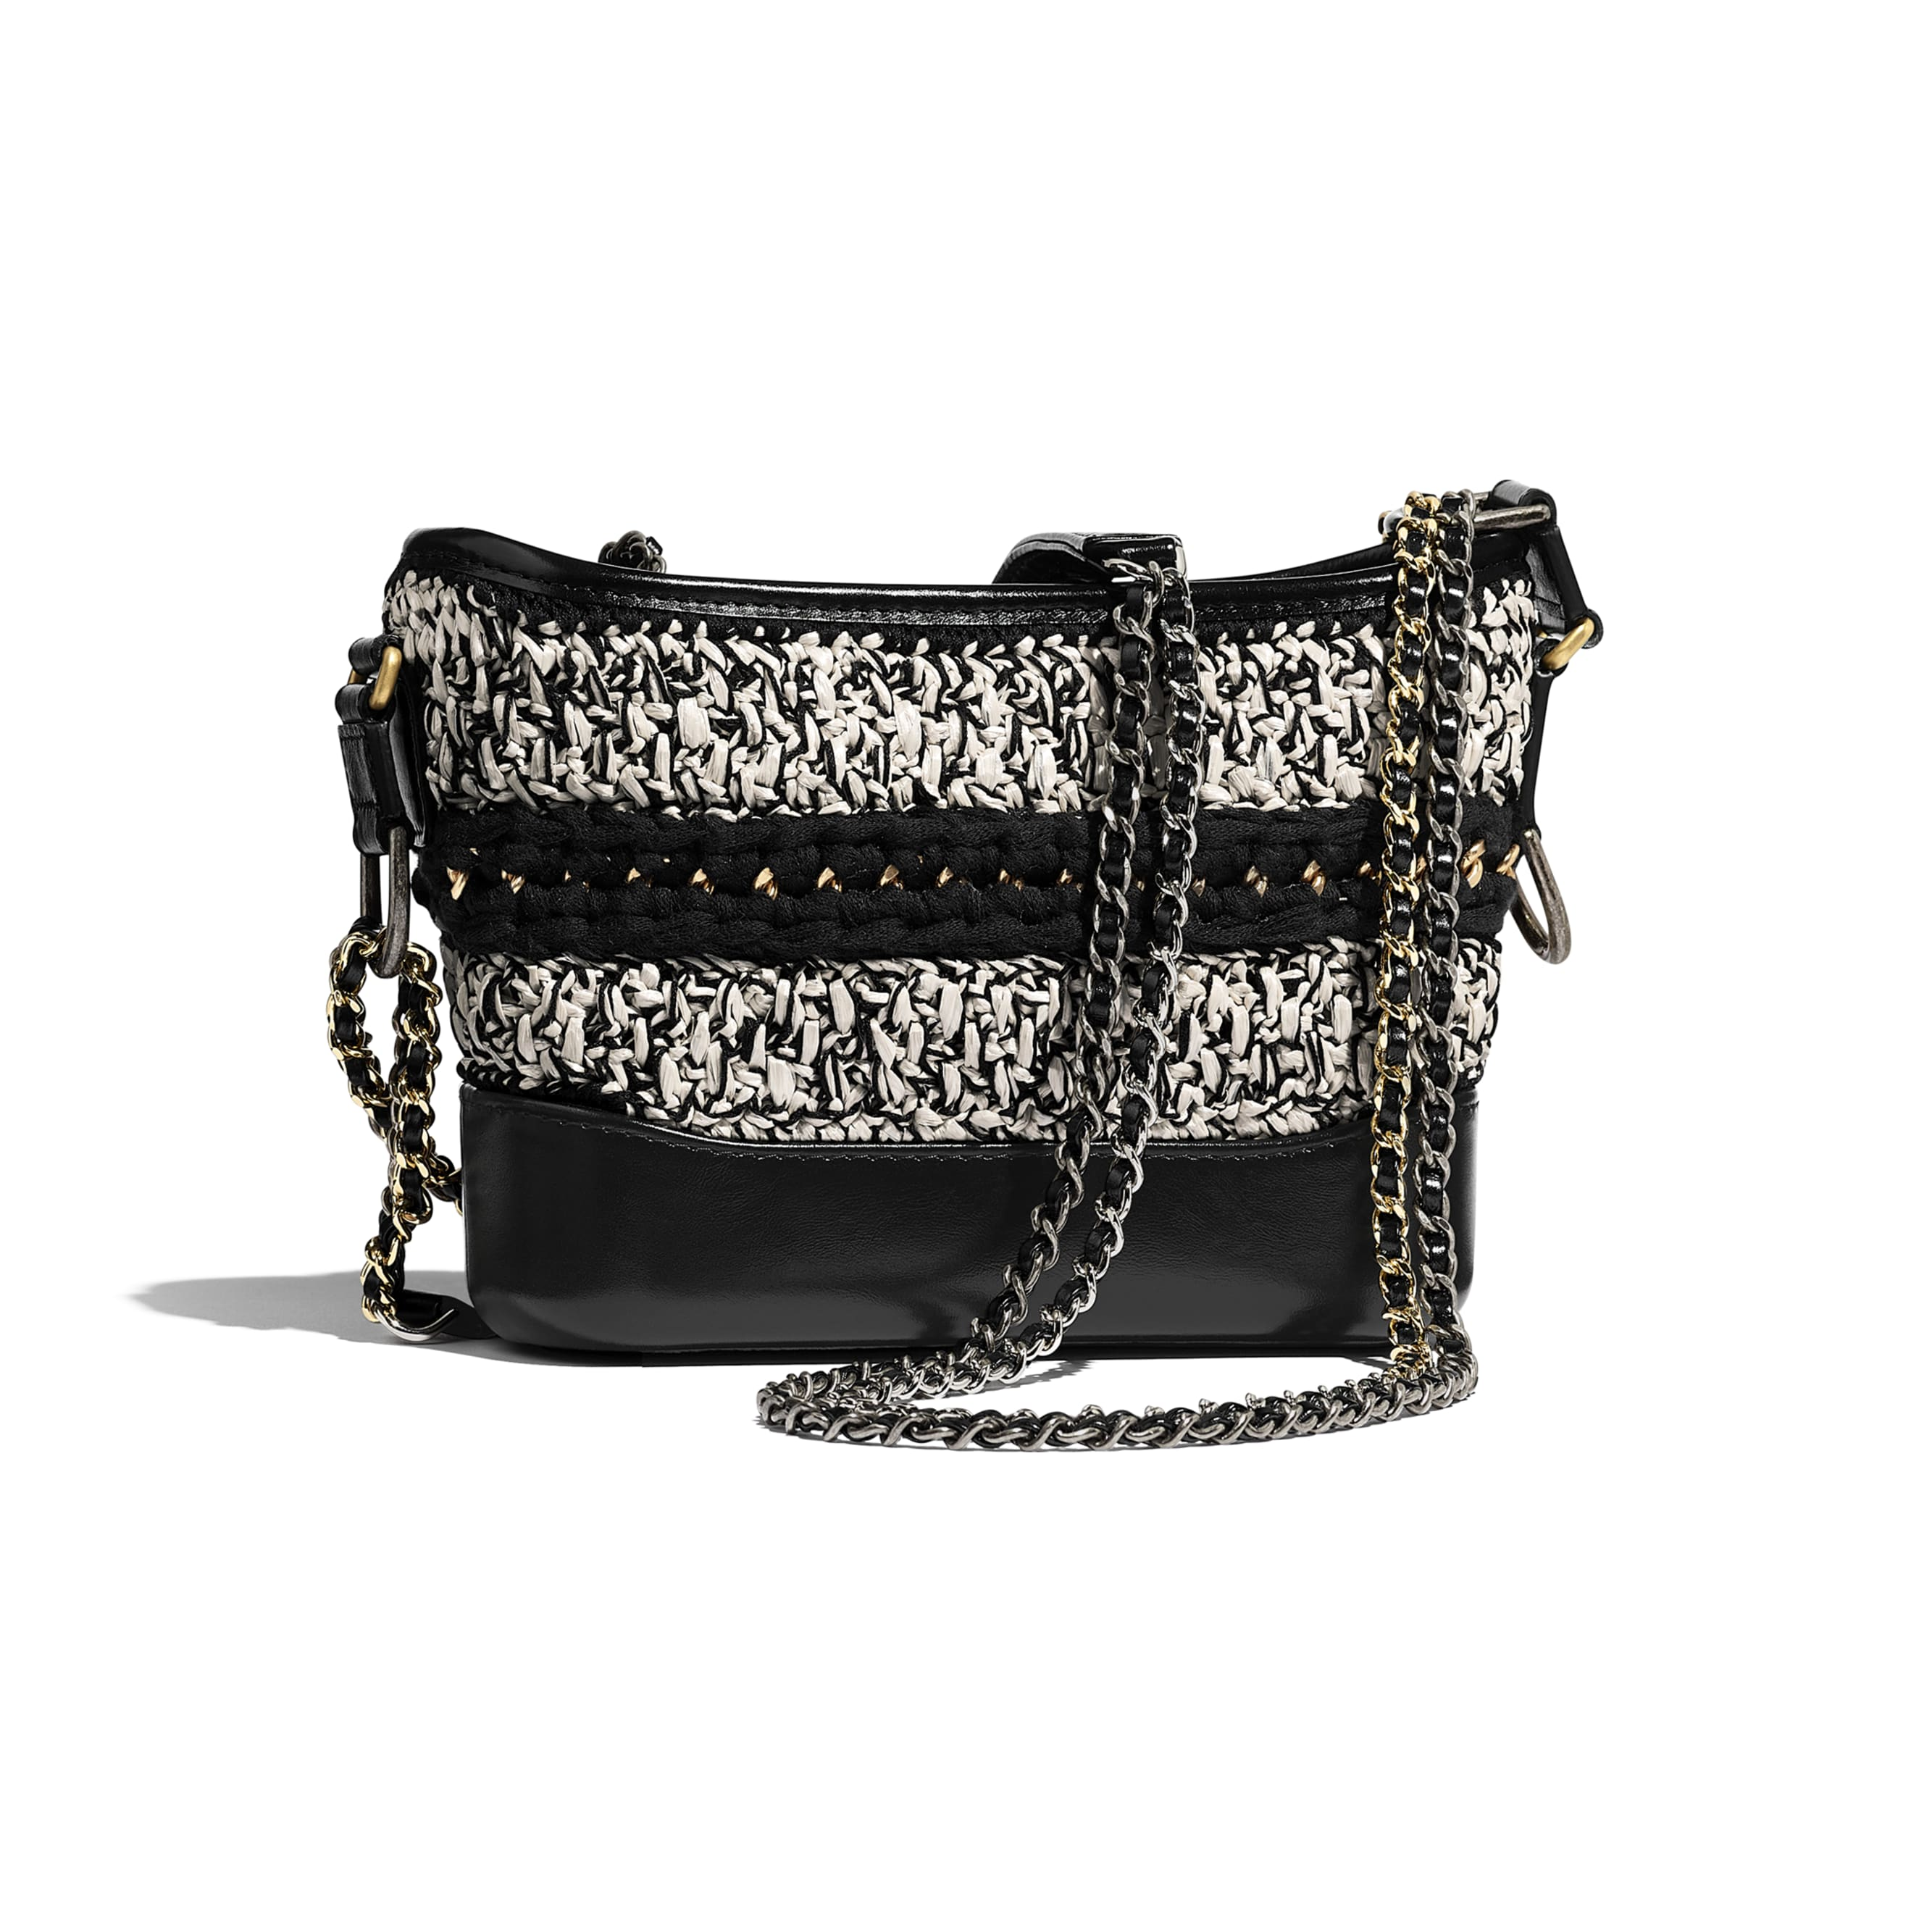 CHANEL'S GABRIELLE Small Hobo Bag - Black & White - Mixed Fibers, Calfskin, Gold-Tone & Silver-Tone Metal - CHANEL - Alternative view - see standard sized version